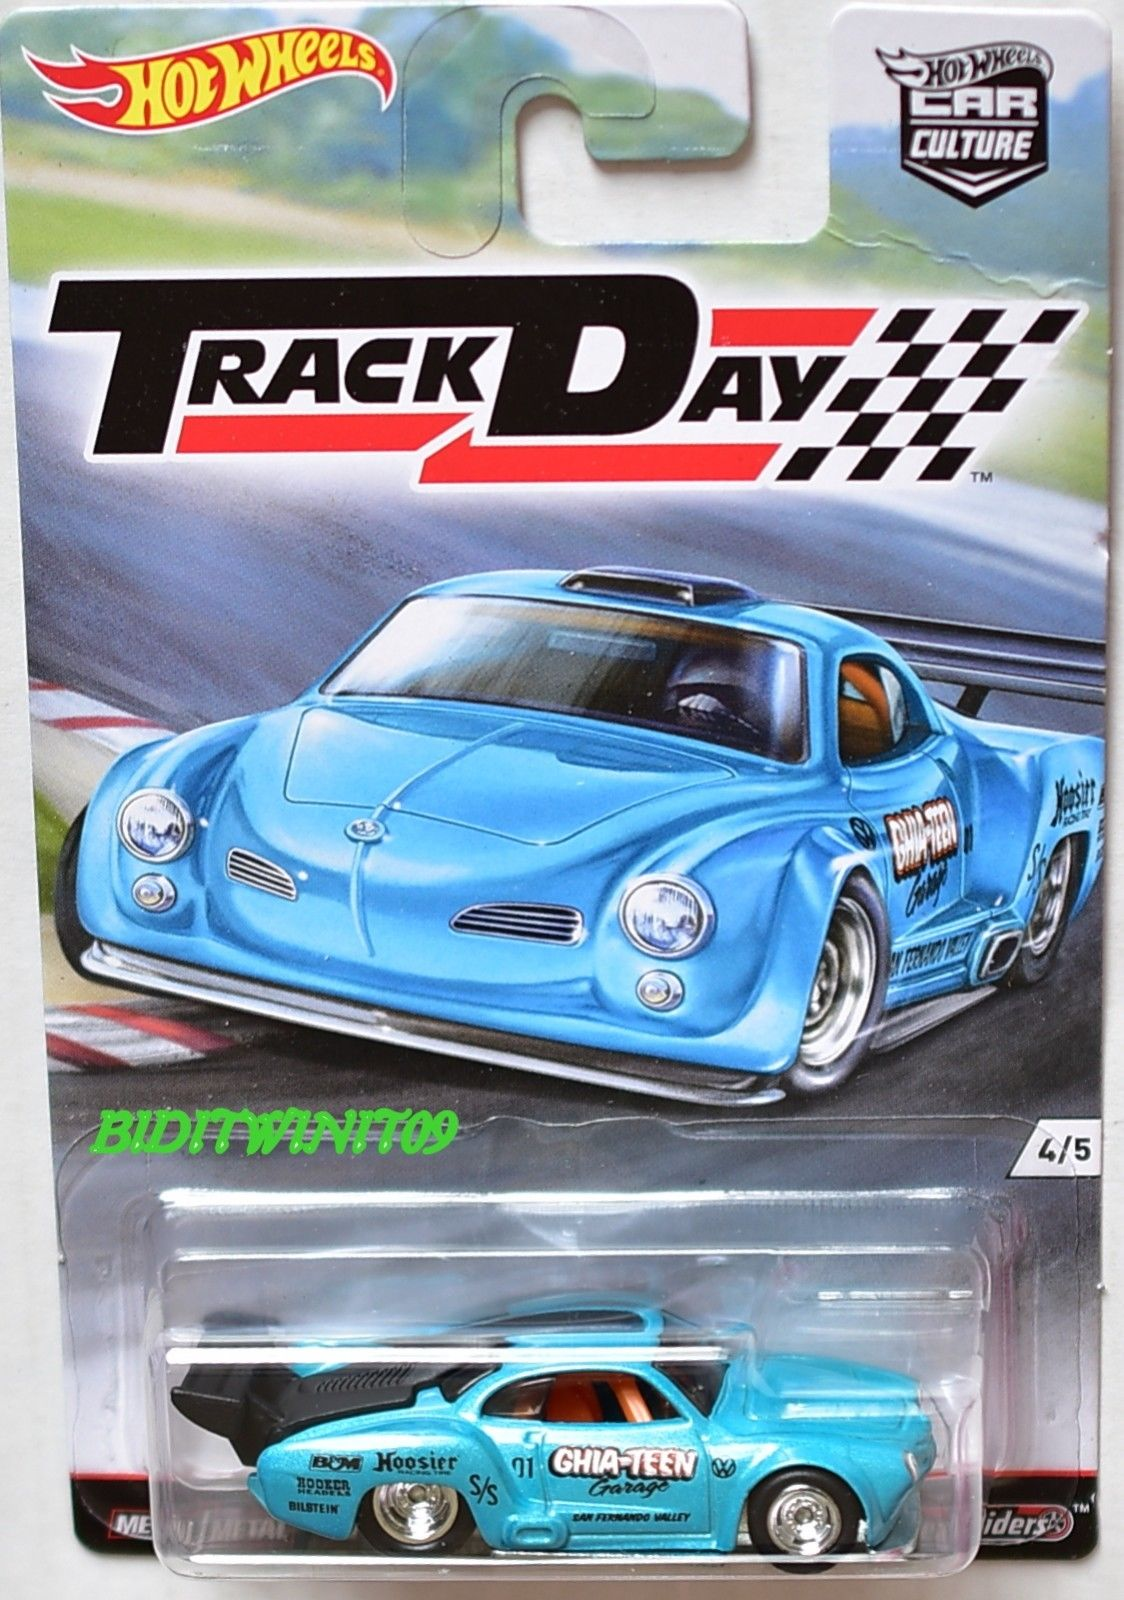 HOT WHEELS 2016 CAR CULTURE TRACK DAY VOLKSWAGEN KARMANN GHIA #4/5 BENT CARD